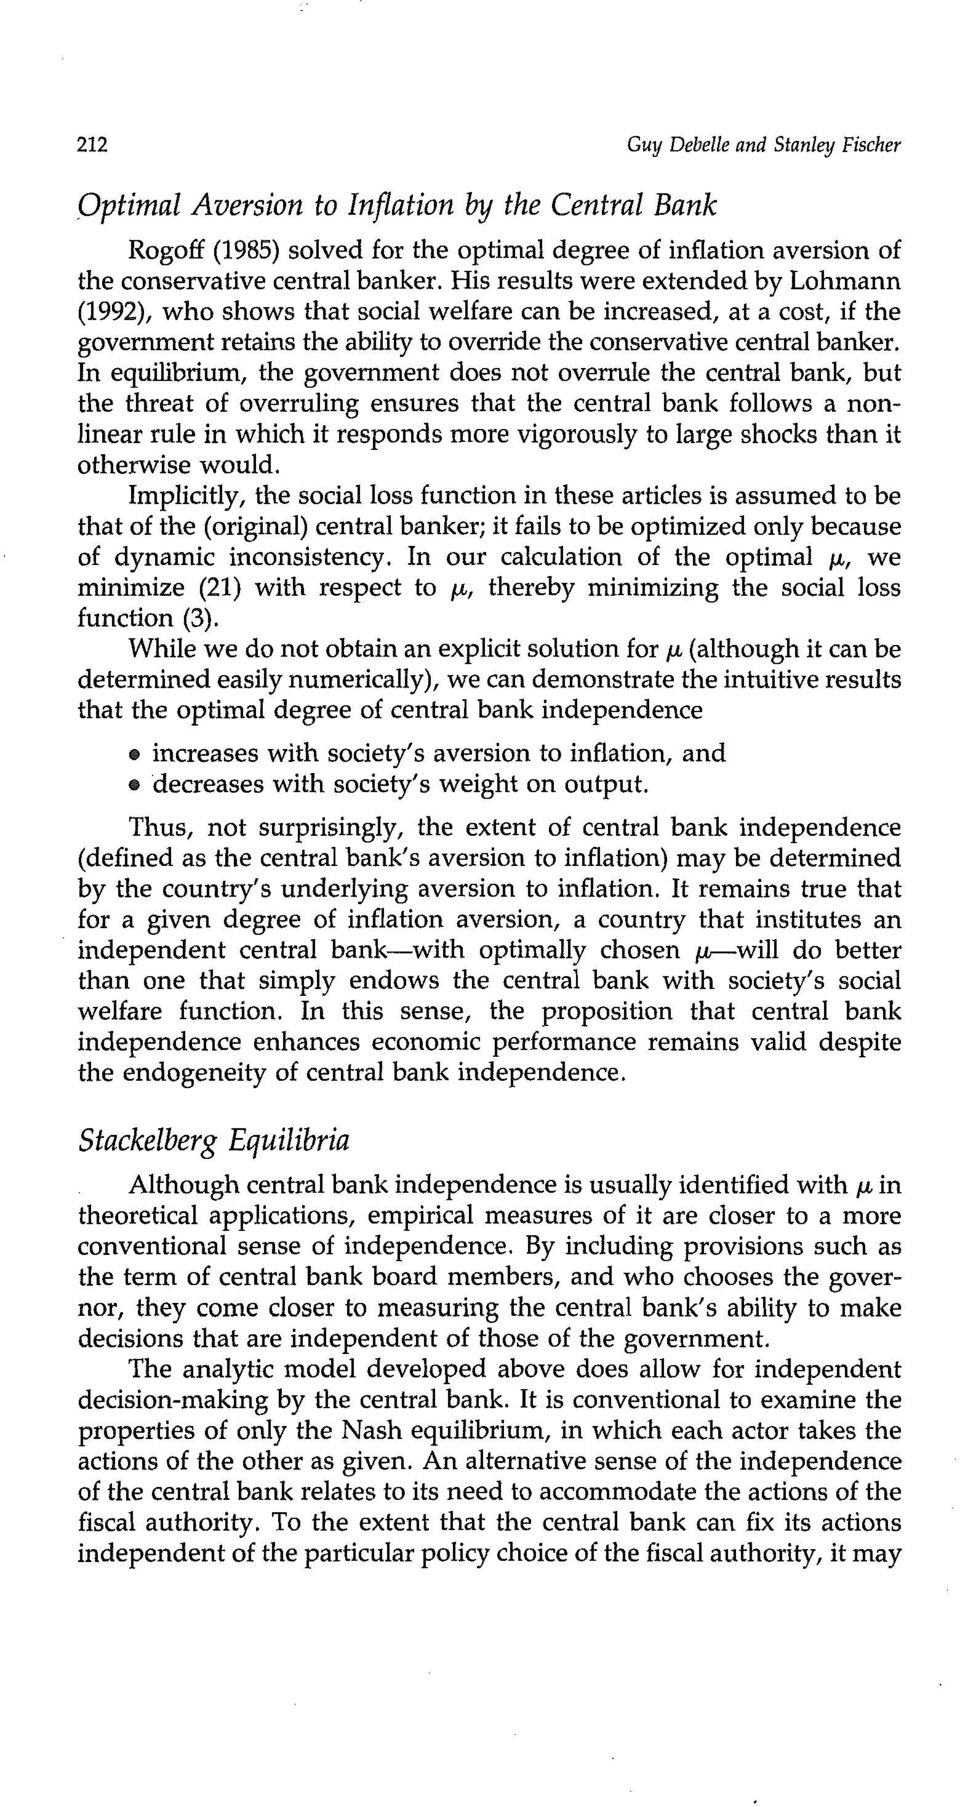 In equilibrium, the government does not overrule the central bank, but the threat of overruling ensures that the central bank follows a nonlinear rule in which it responds more vigorously to large